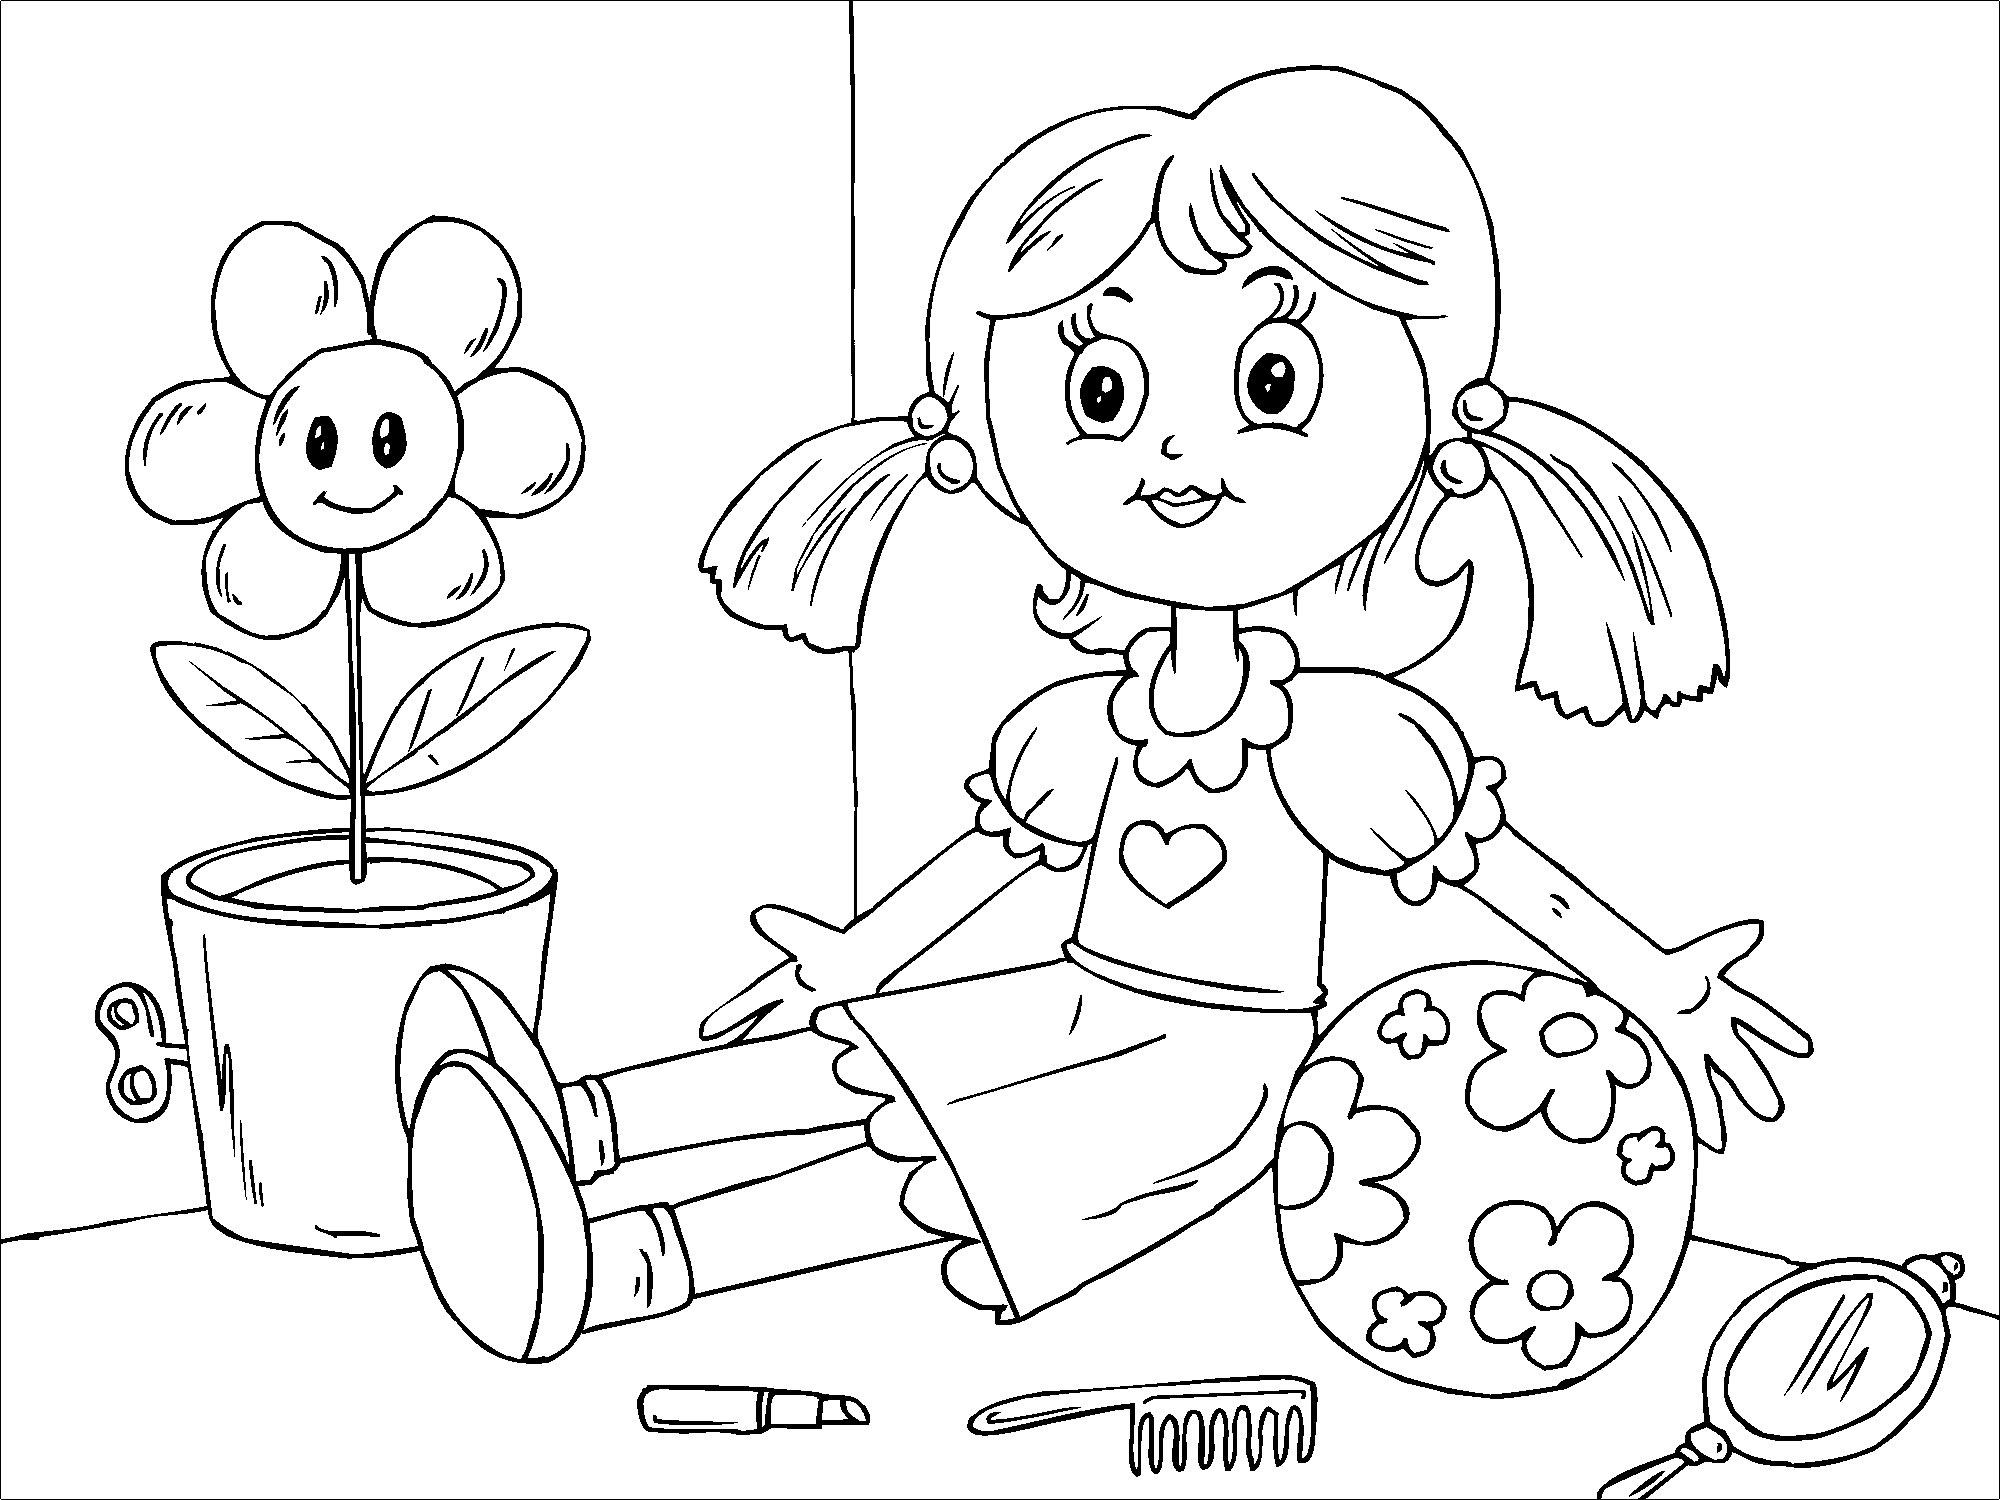 karenswhimsy coloring pages - photo#8